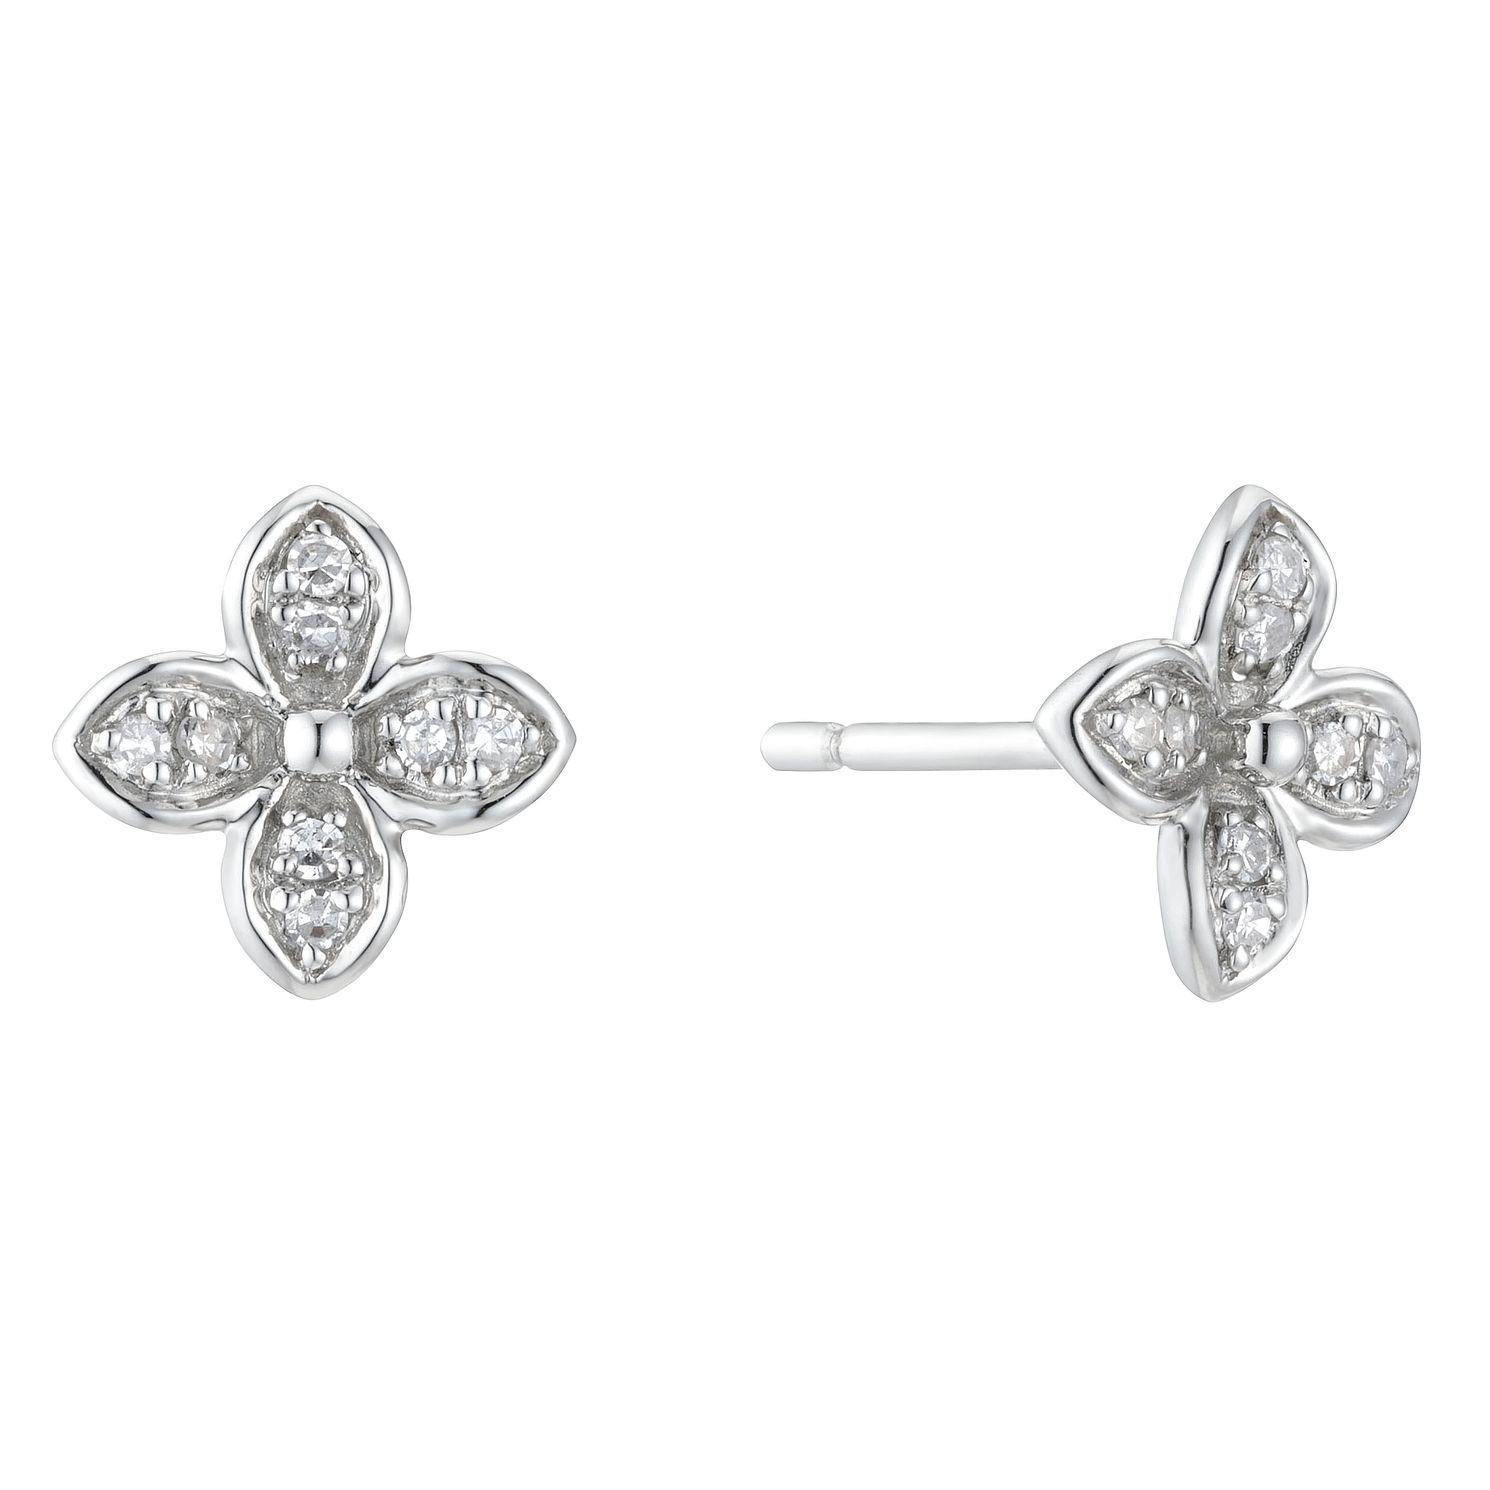 9ct White Gold Diamond Flower Stud Earrings - Product number 3400417